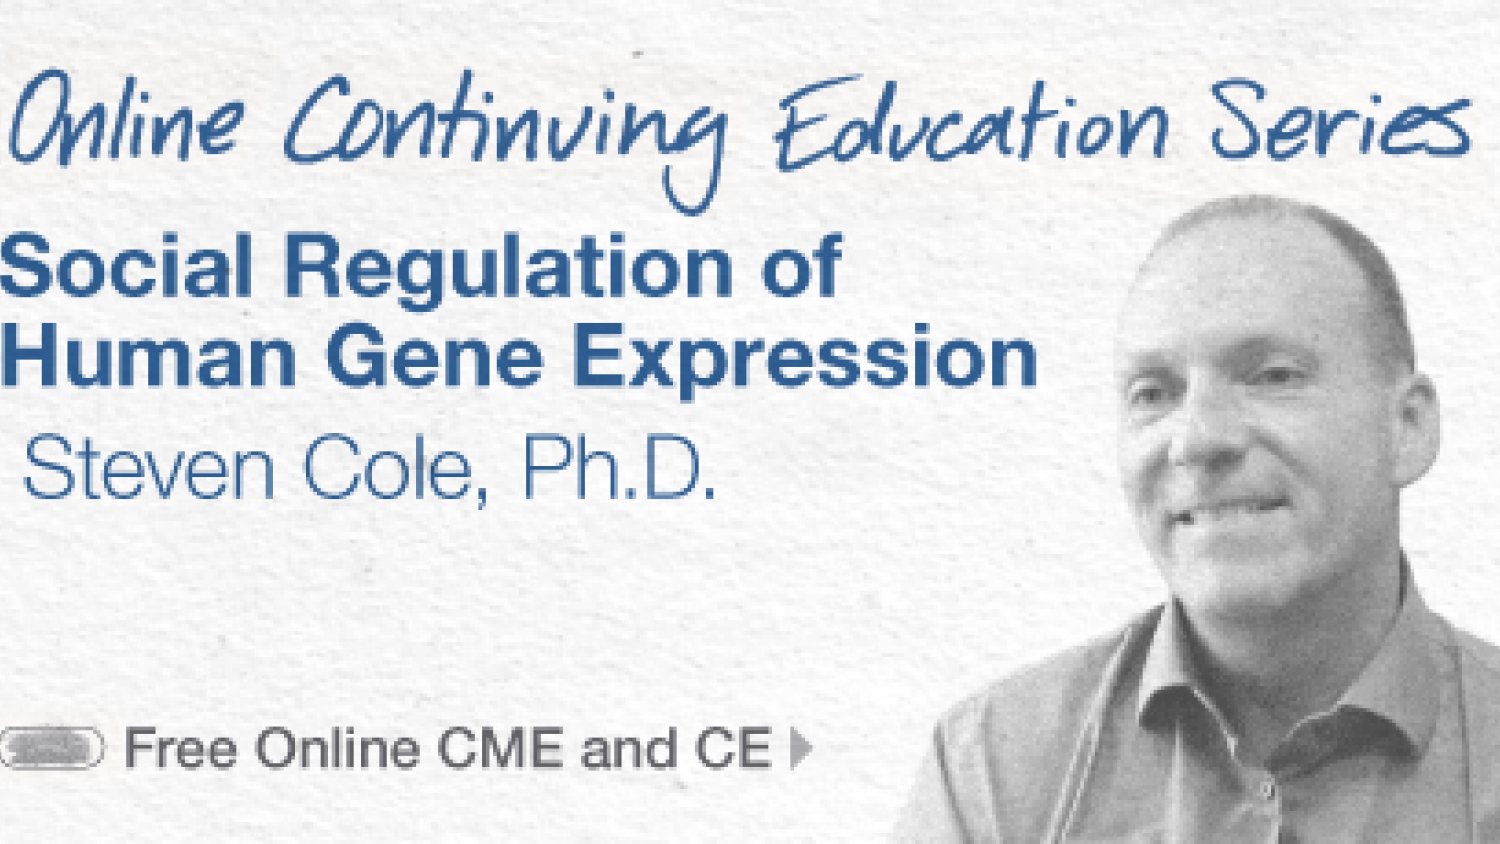 Online Continuing Education Series: Social Regulation of Human Gene Expression, by Steven Cole, Ph.D. Earn free online CME and CEU.